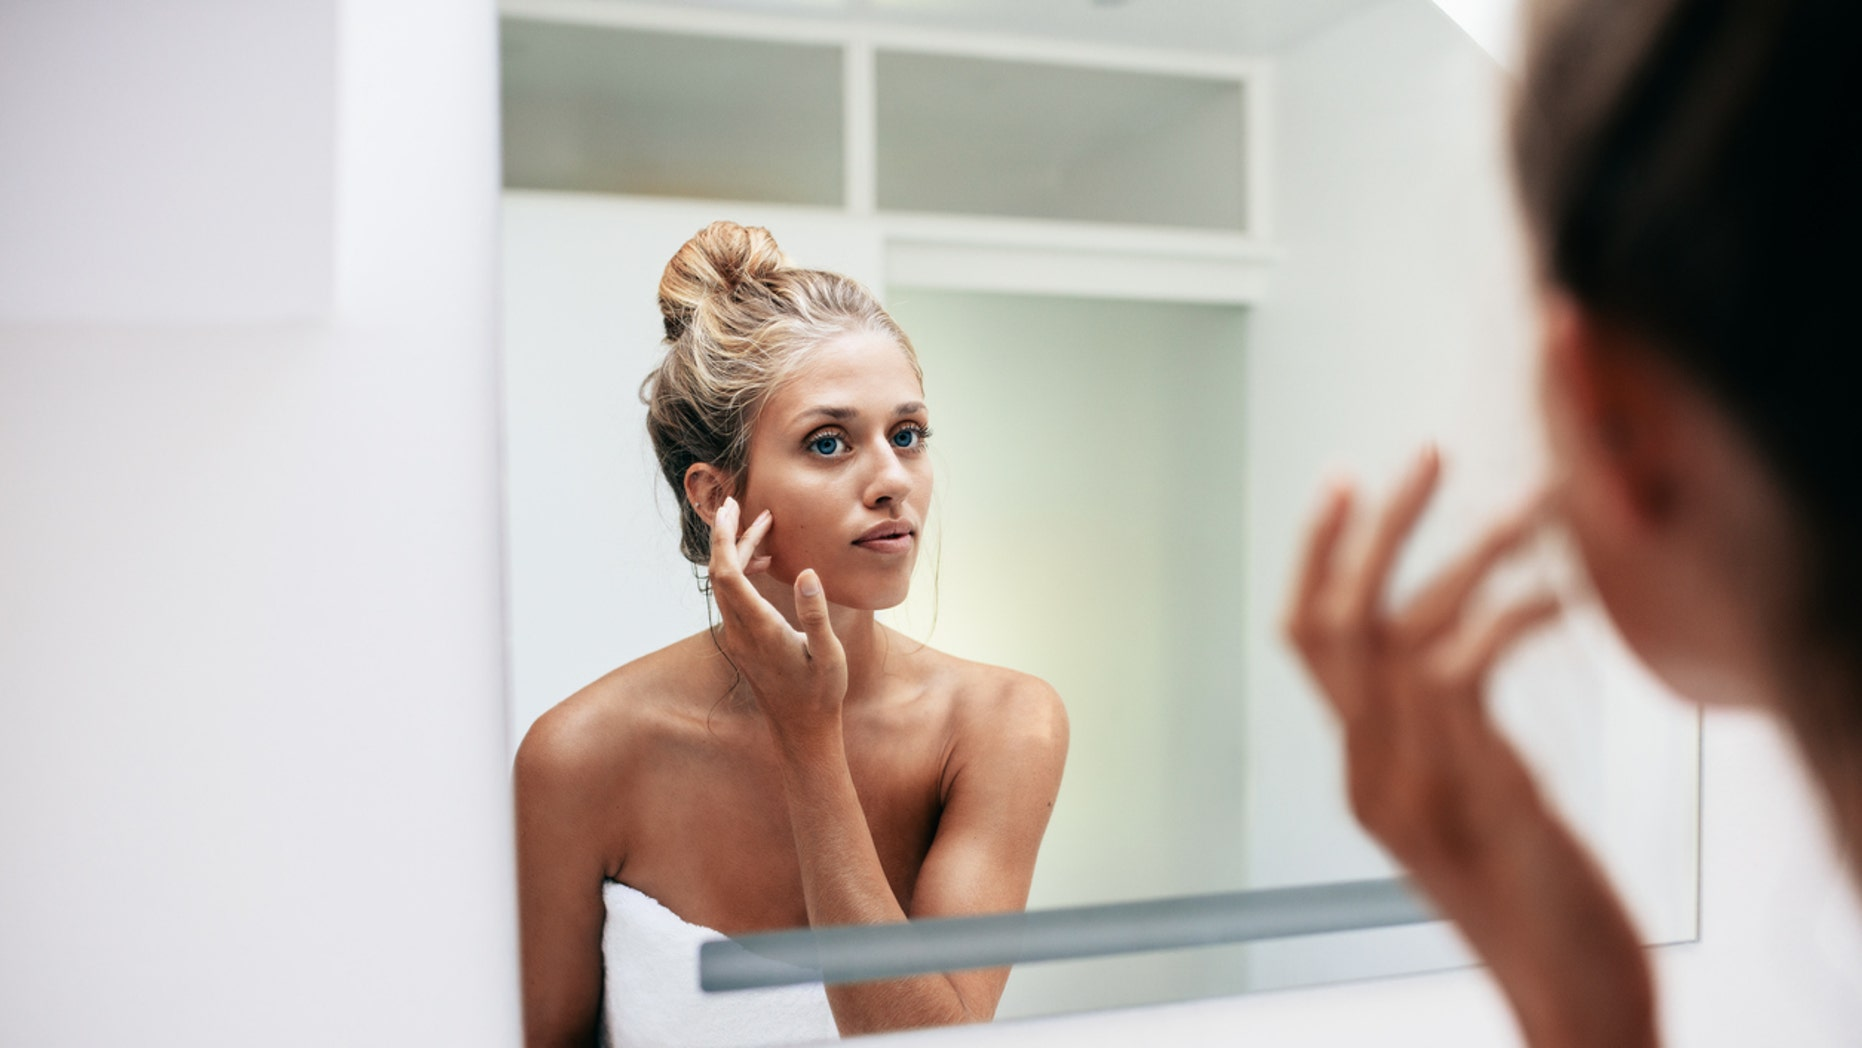 Beautiful young woman standing in the bathroom. Female looking into the mirror and touching her face skin.